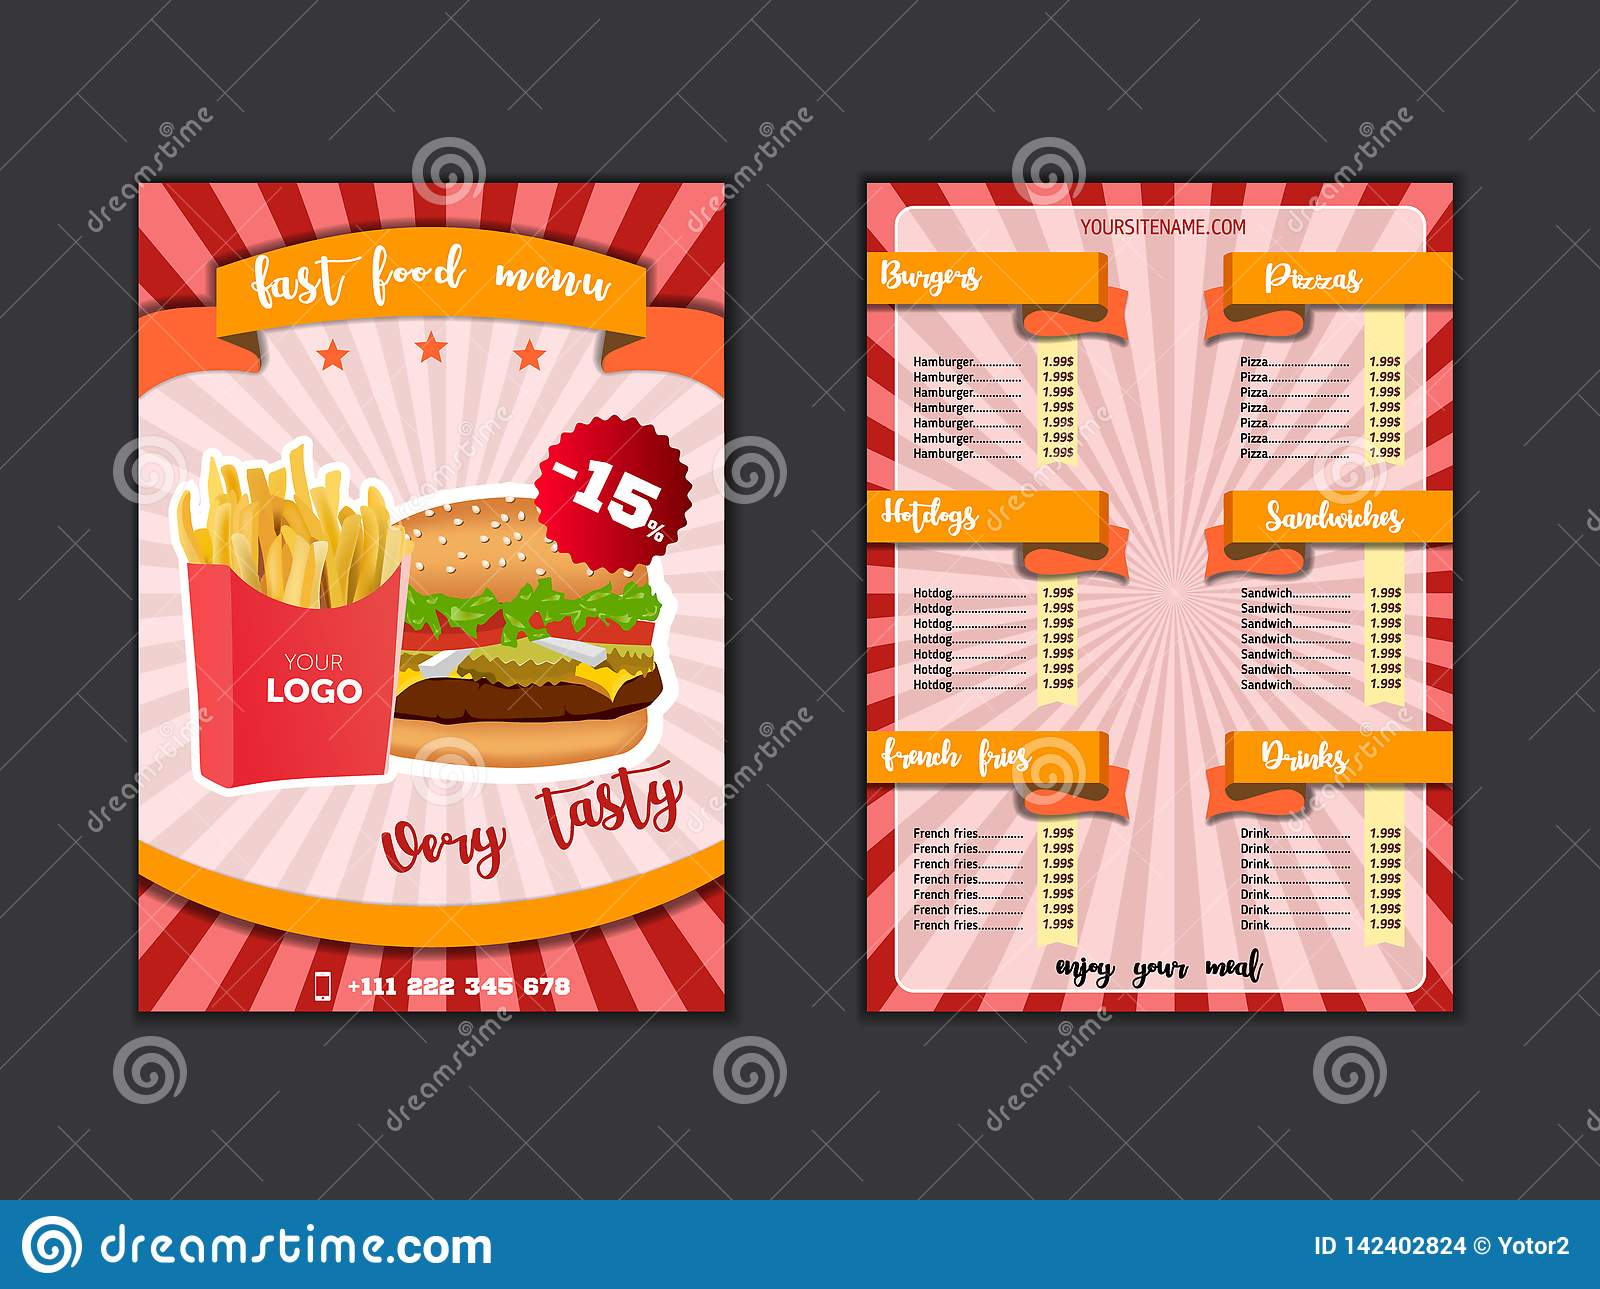 Fast Food Restaurant Menu Template Lunch Dishes And Drinks List With Prices And Burger Pizza Hot Dog Soda Fries Coffee Stock Illustration Illustration Of Fast Cooking 142402824